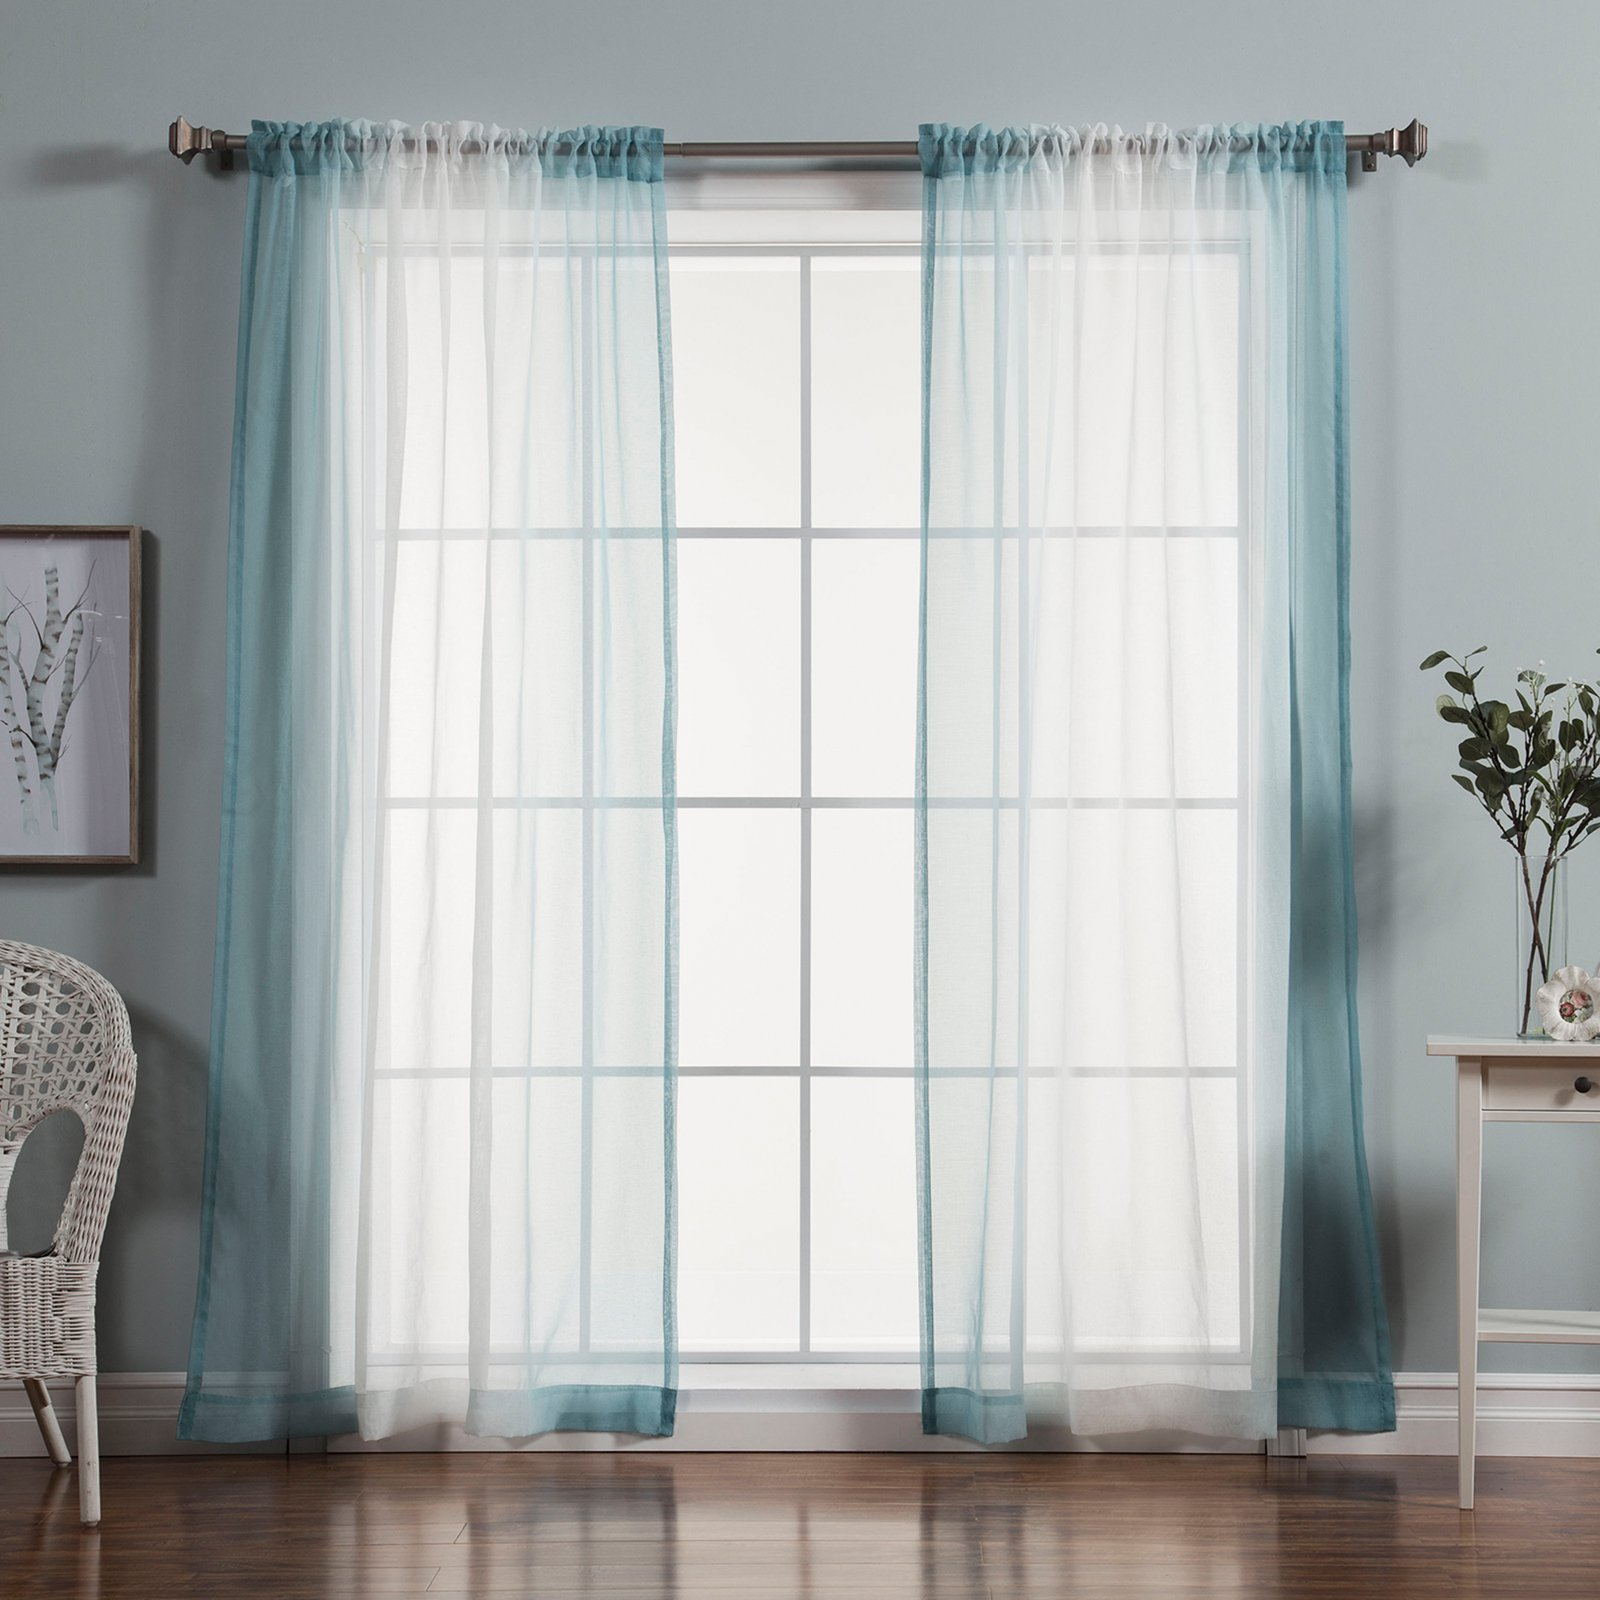 Best Home Fashion Sheer Faux Linen Ombre Border Curtains Within Widely Used Ombre Faux Linen Semi Sheer Curtains (View 4 of 20)